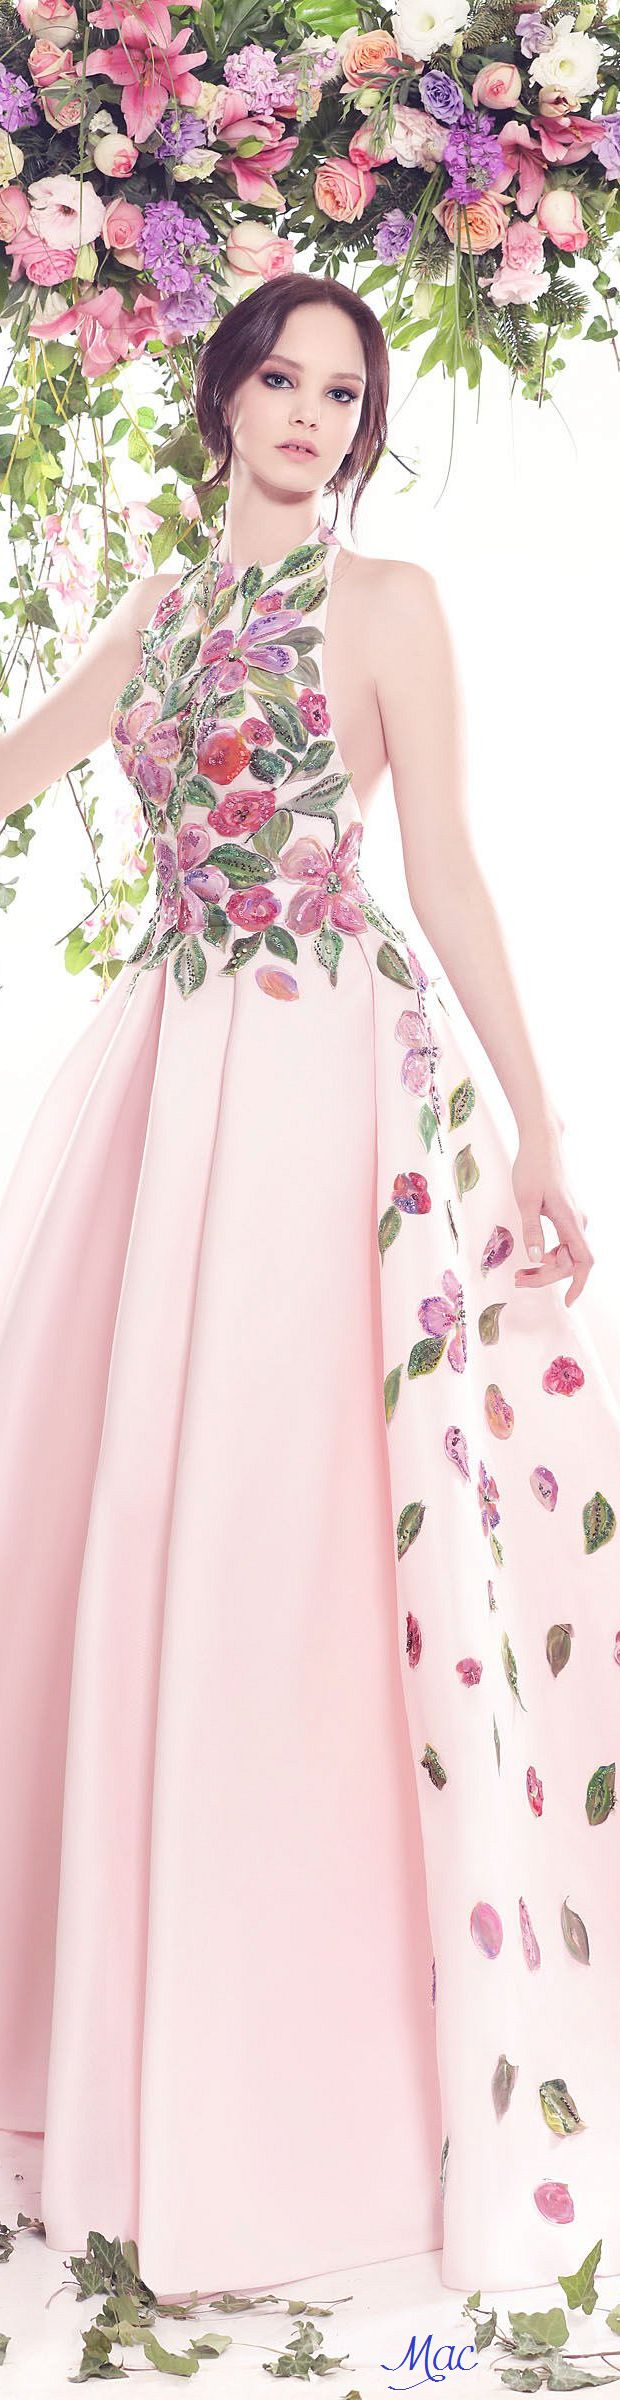 Spring 2016 Haute Couture Fadwa Baalbaki Clothing, Shoes & Jewelry : Women : Clothing : Active : gym http://amzn.to/2lL2x3Ehttp://www.flip-zone.com/